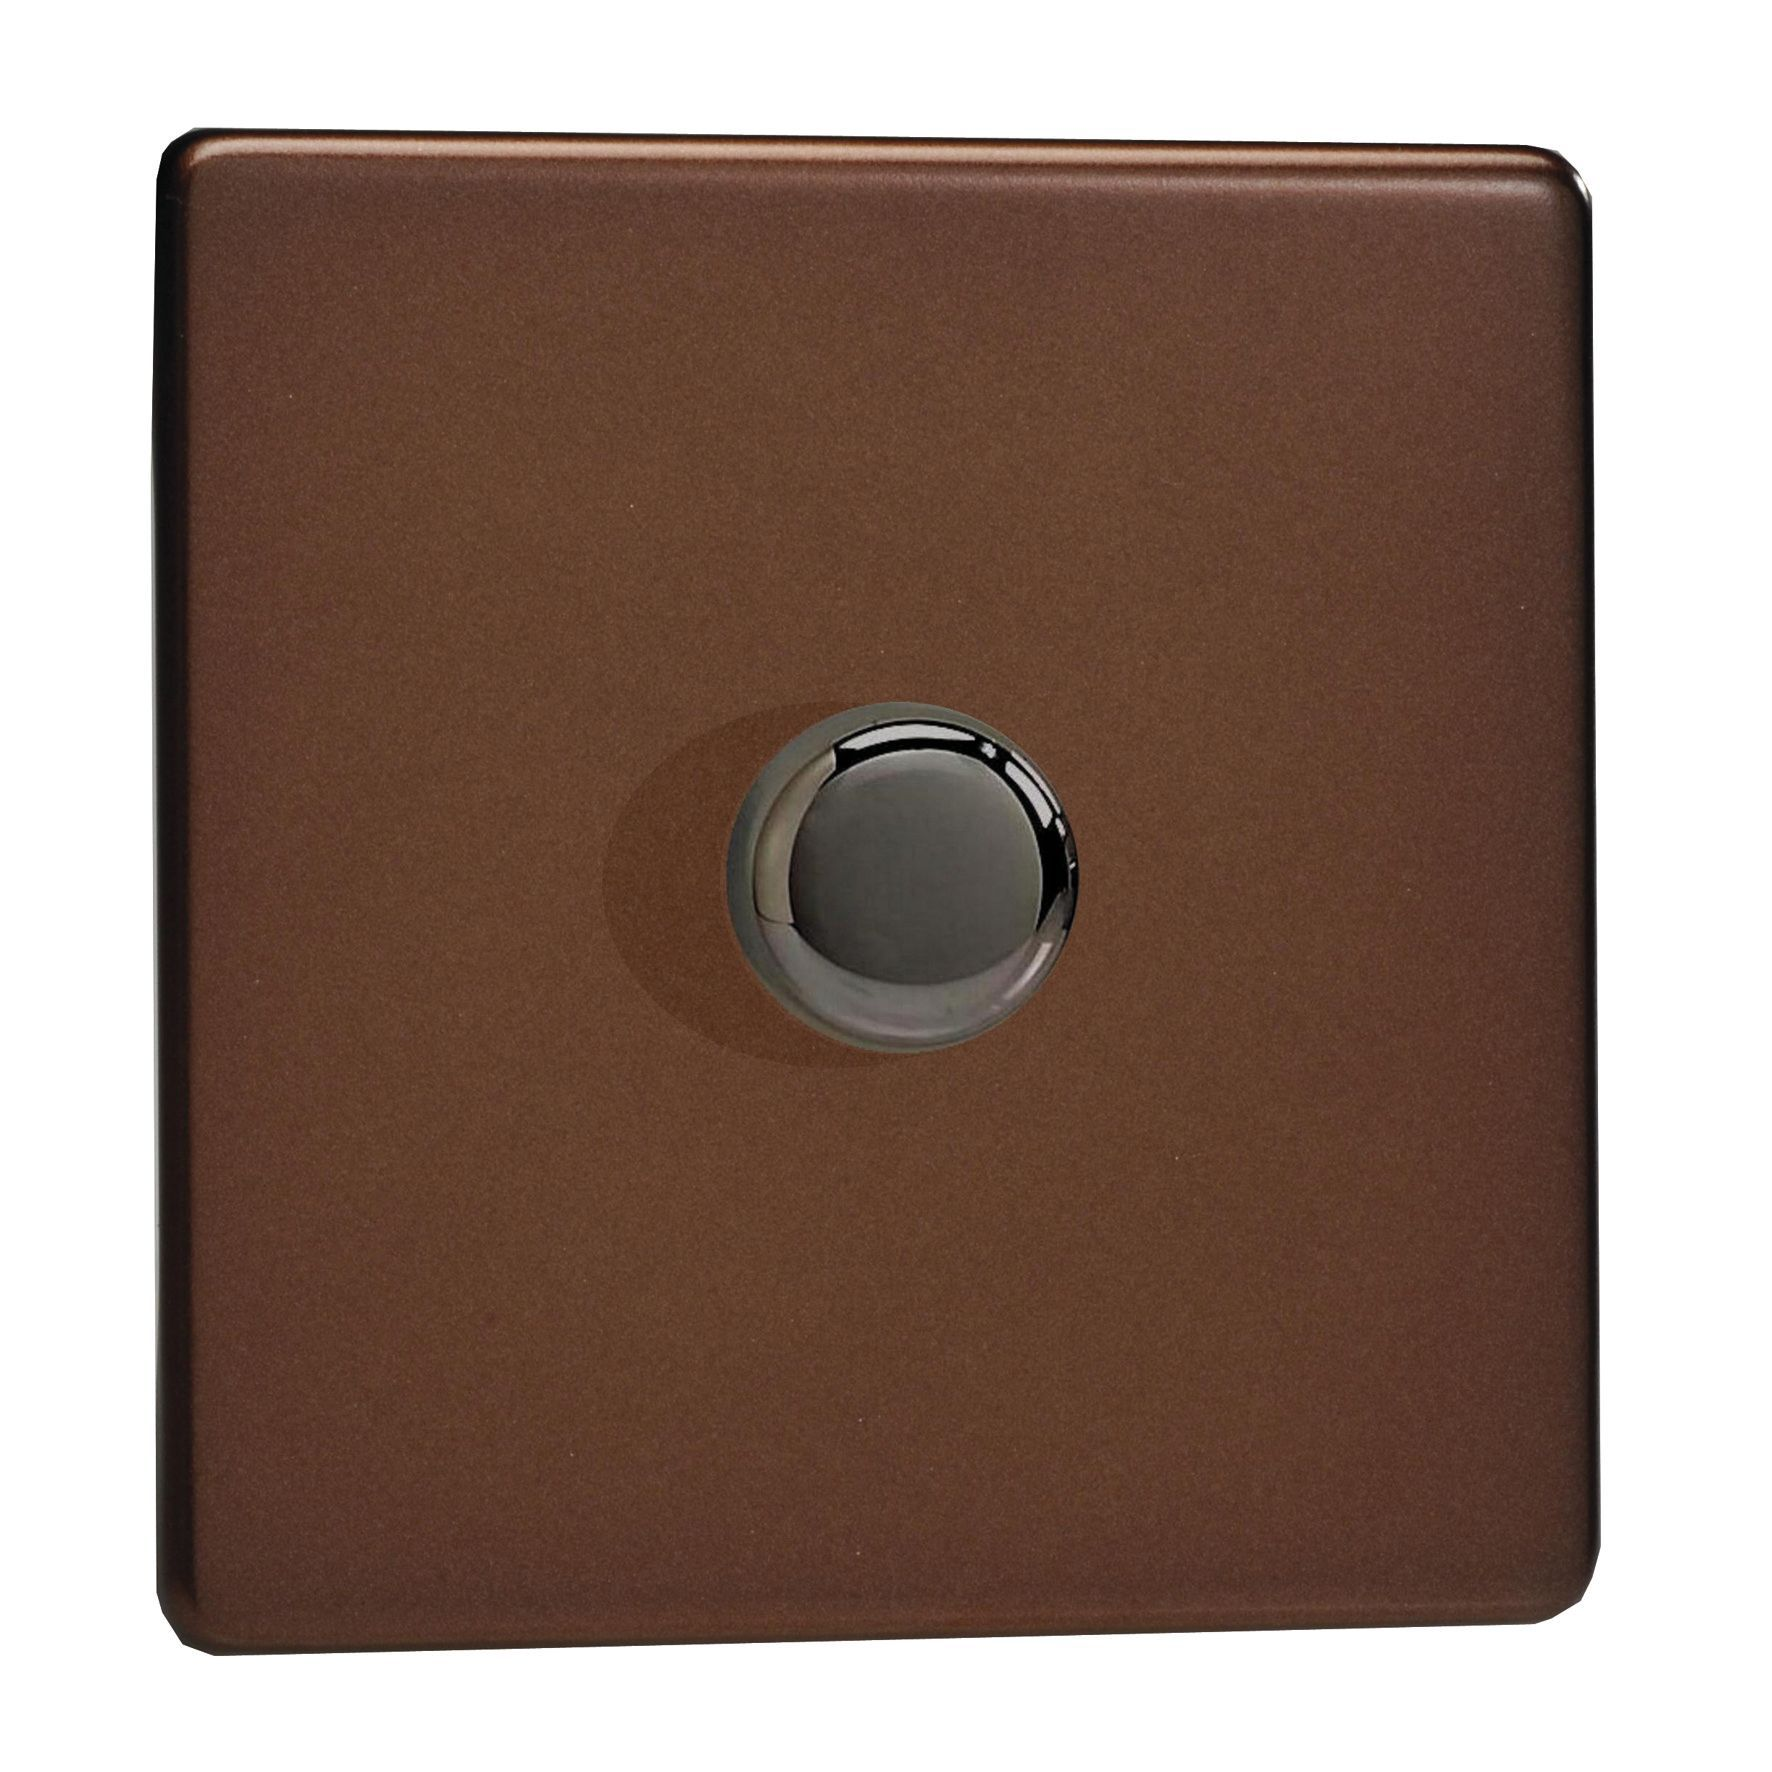 varilight 2 way single mocha satin dimmer switch departments diy at b q. Black Bedroom Furniture Sets. Home Design Ideas